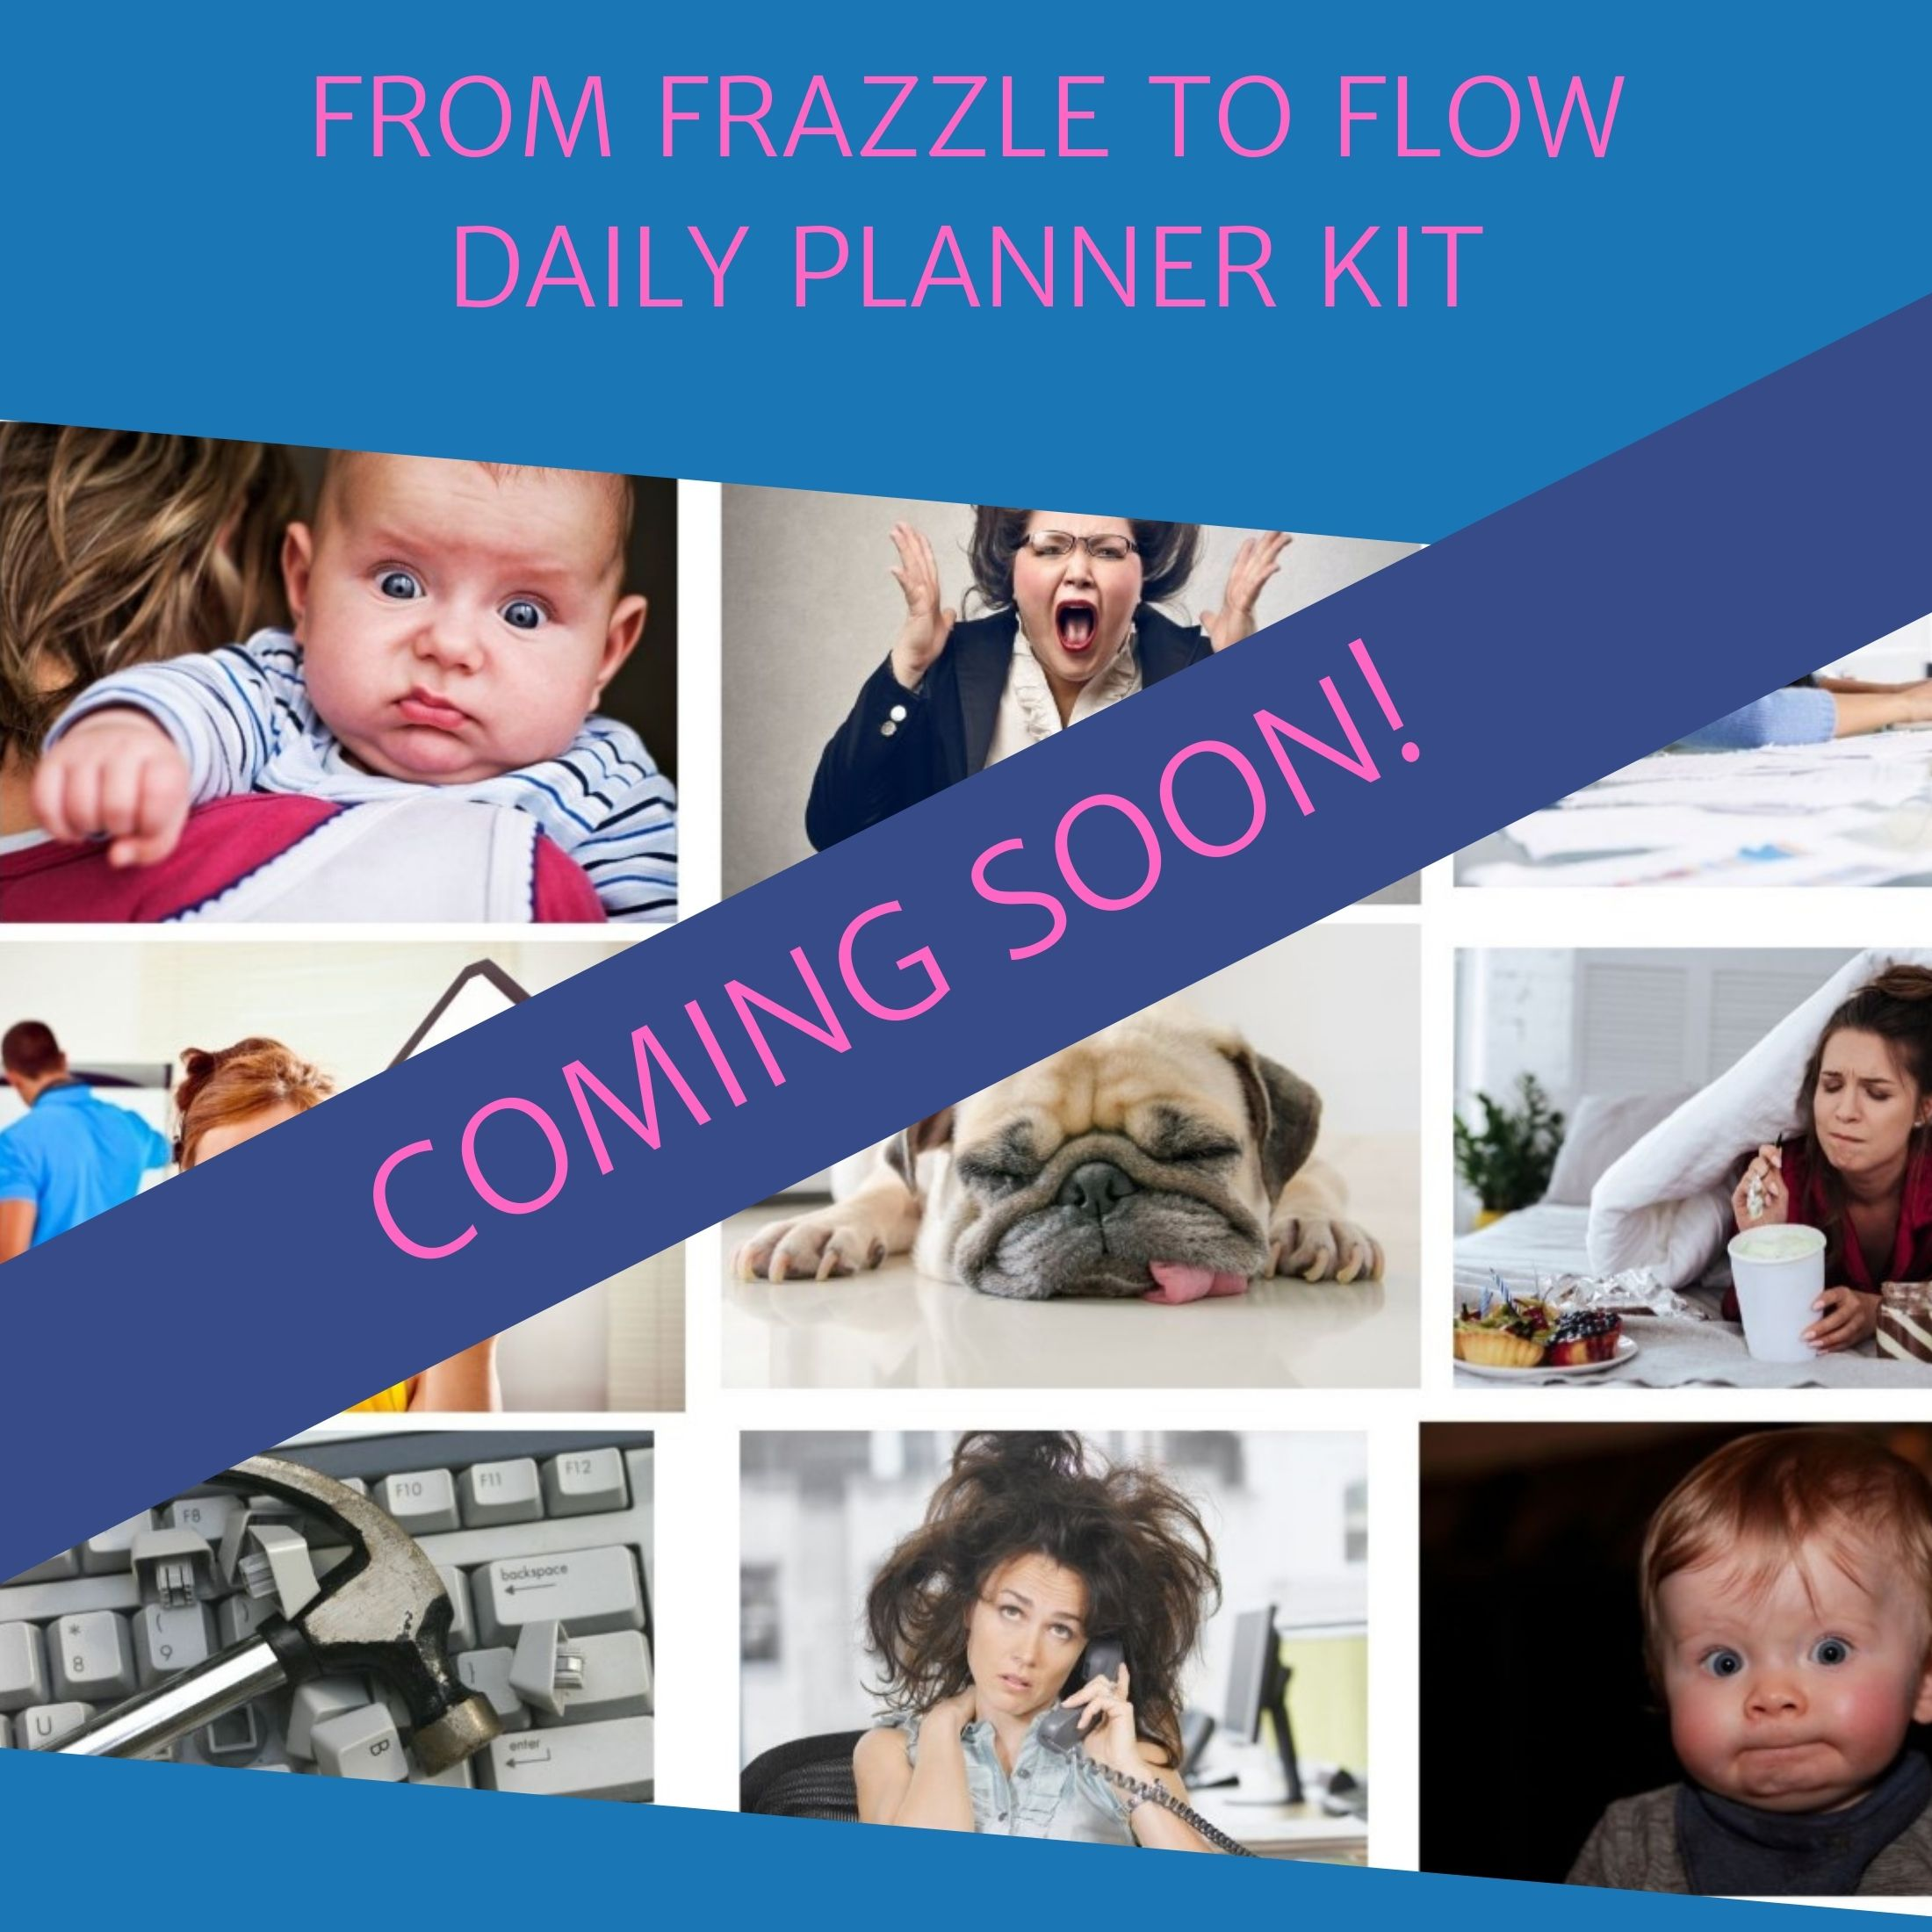 frazzle to flow coming soon!